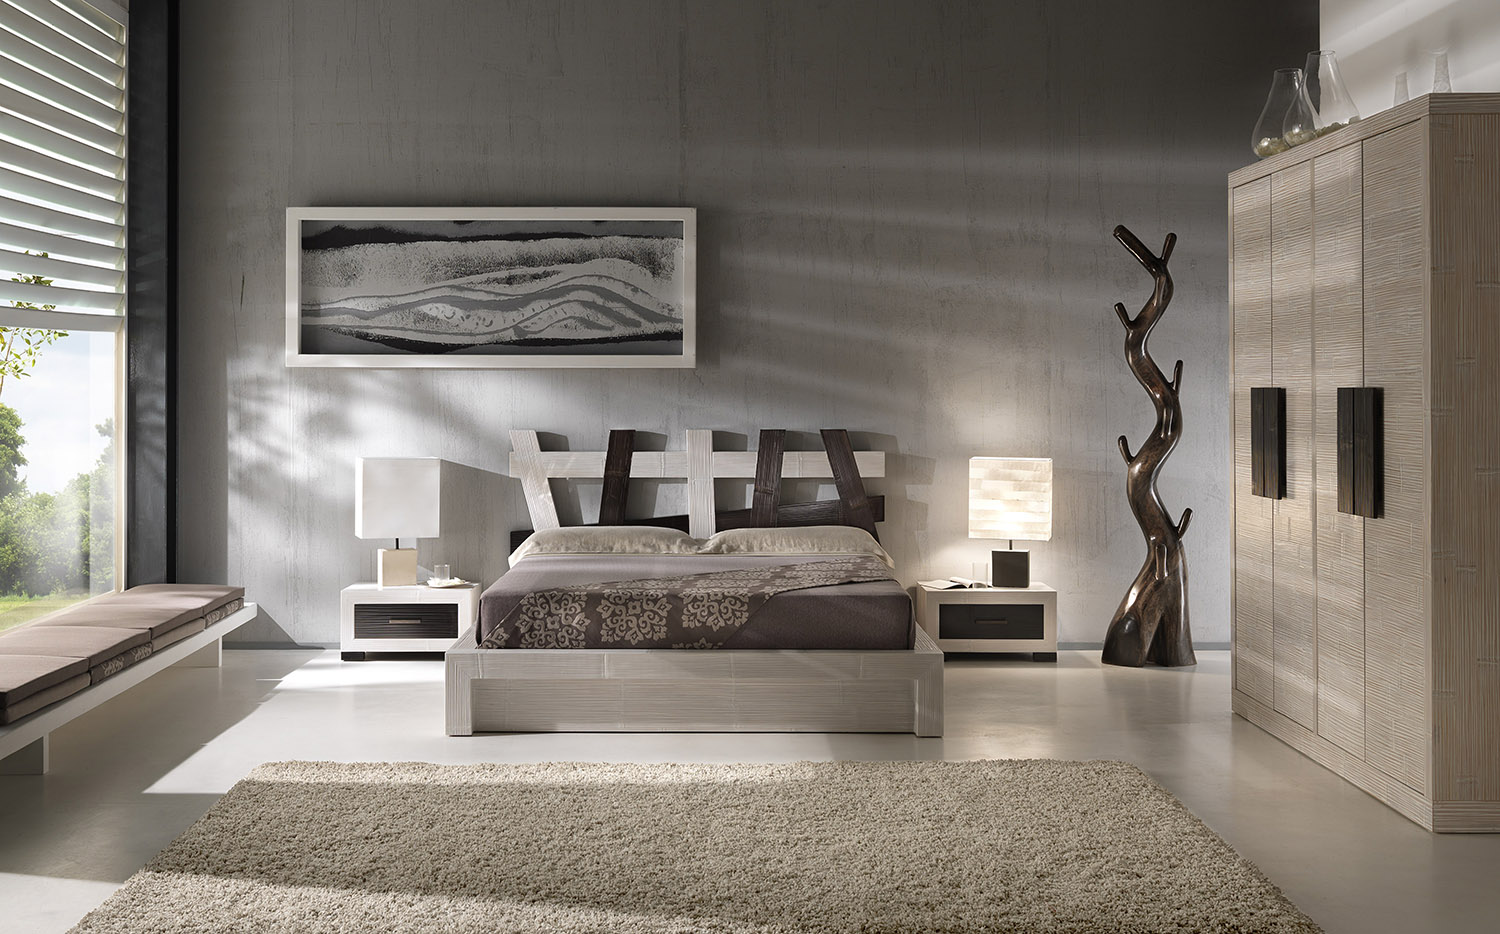 wir bieten ihnen bambusm bel f r ihr heim. Black Bedroom Furniture Sets. Home Design Ideas